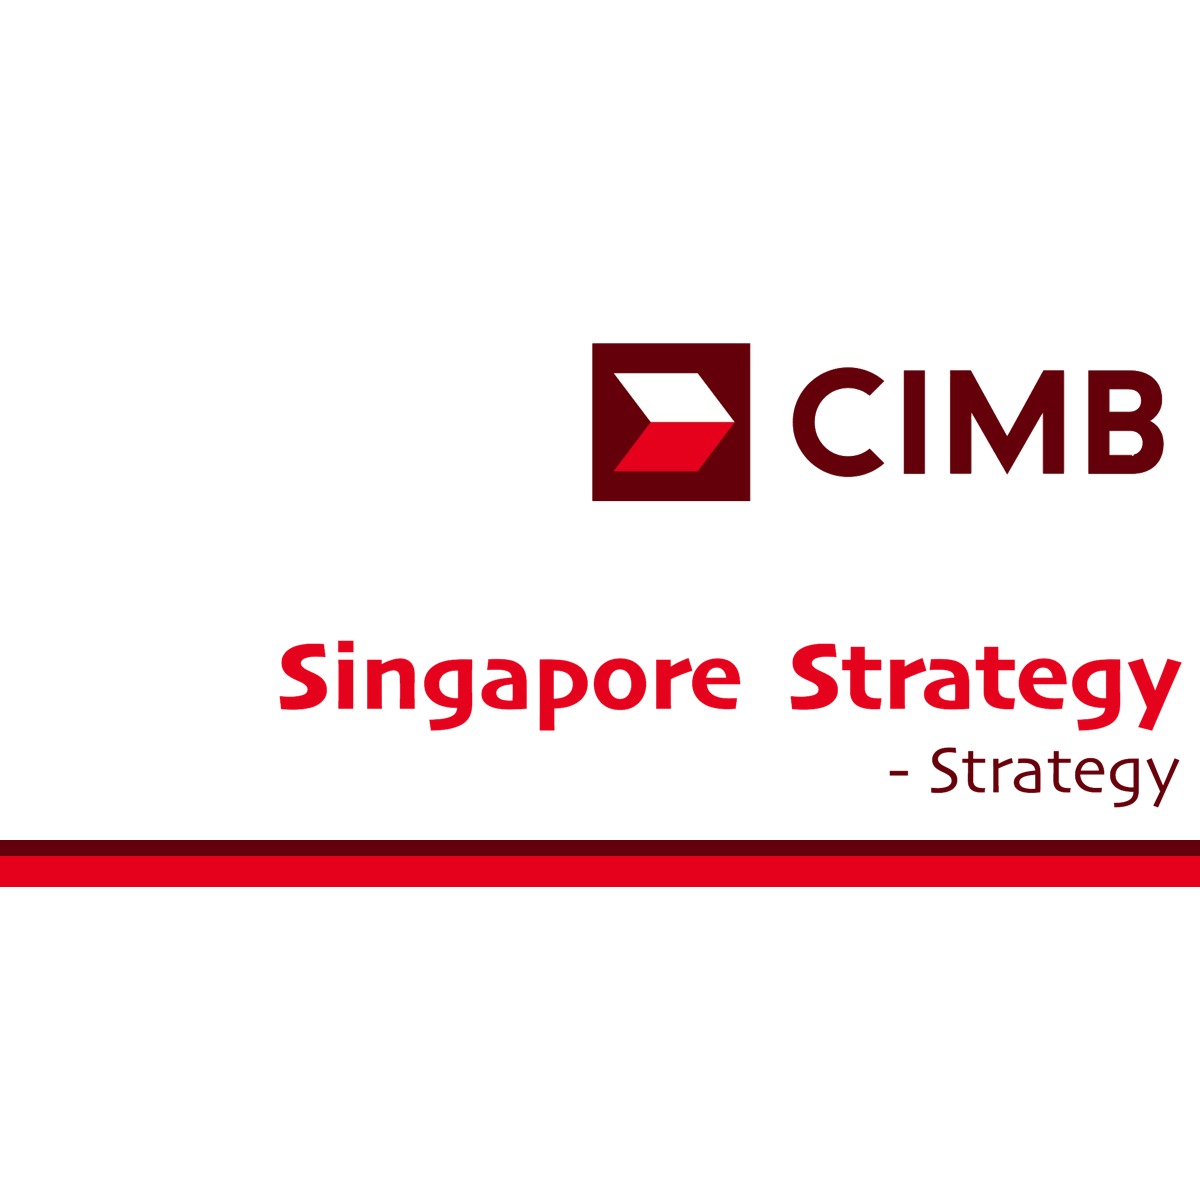 Singapore Strategy - CIMB Research 2016-11-17: Belt tightening